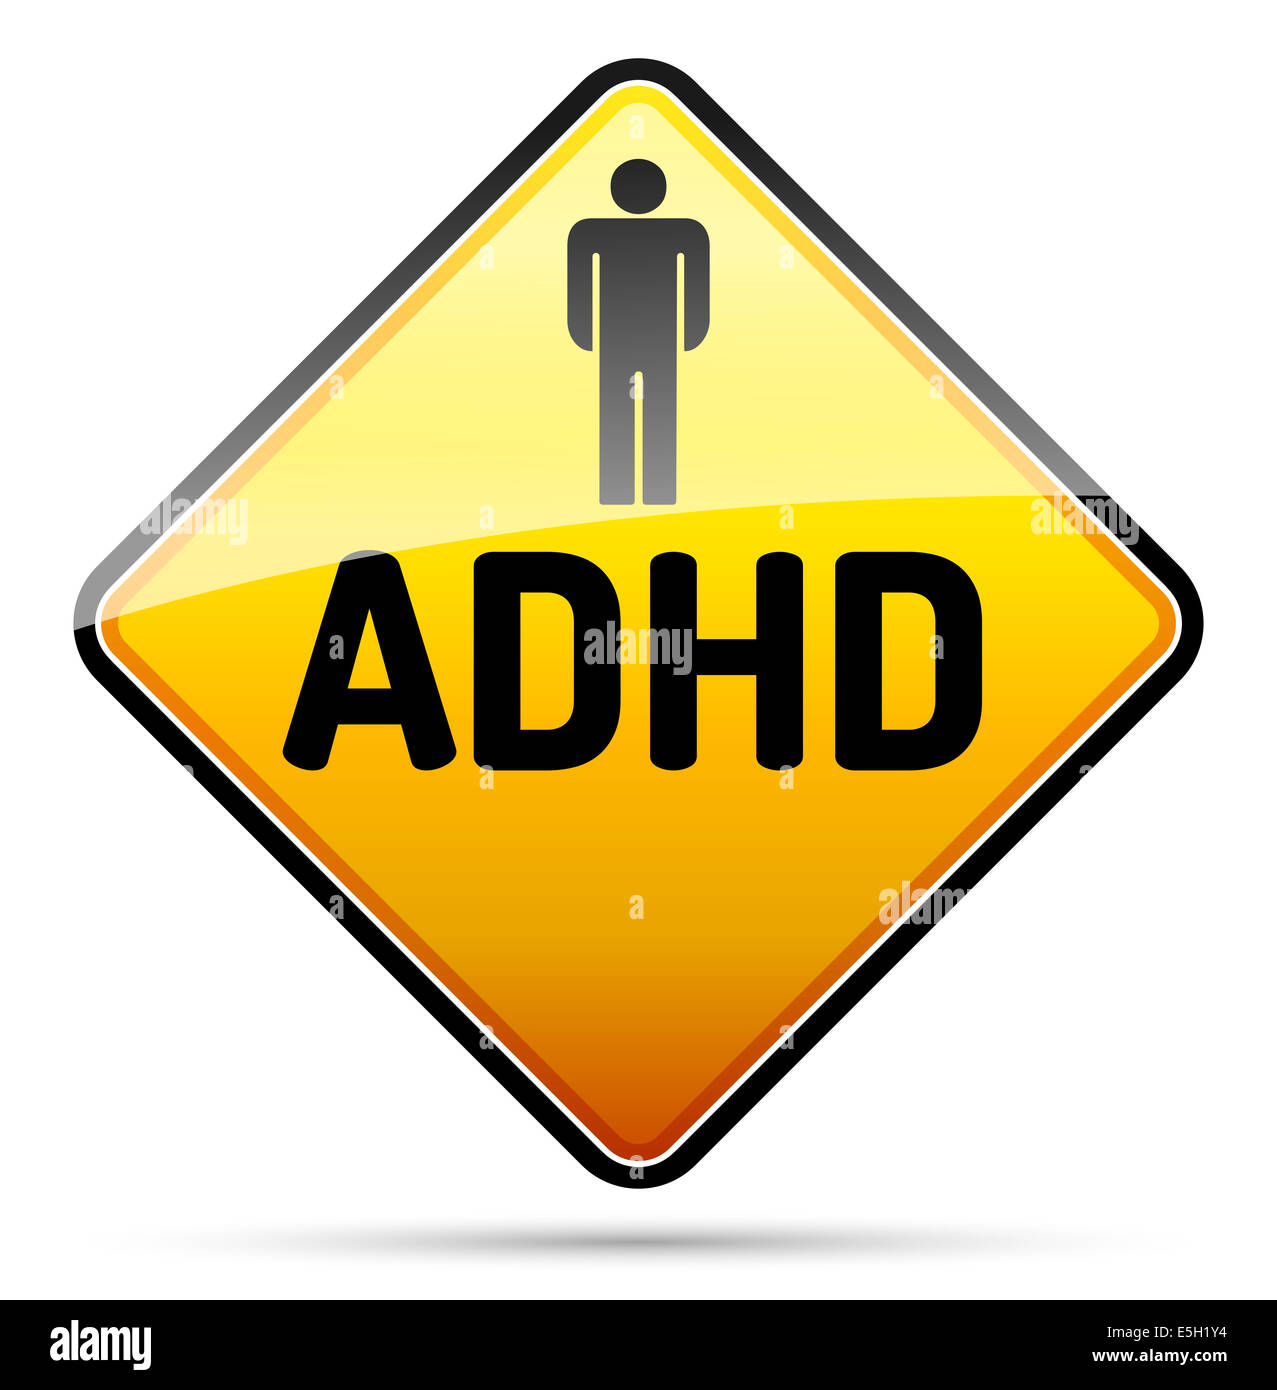 ADHD - Attention deficit hyperactivity disorder - isolated sign with reflection and shadow on white background - Stock Image